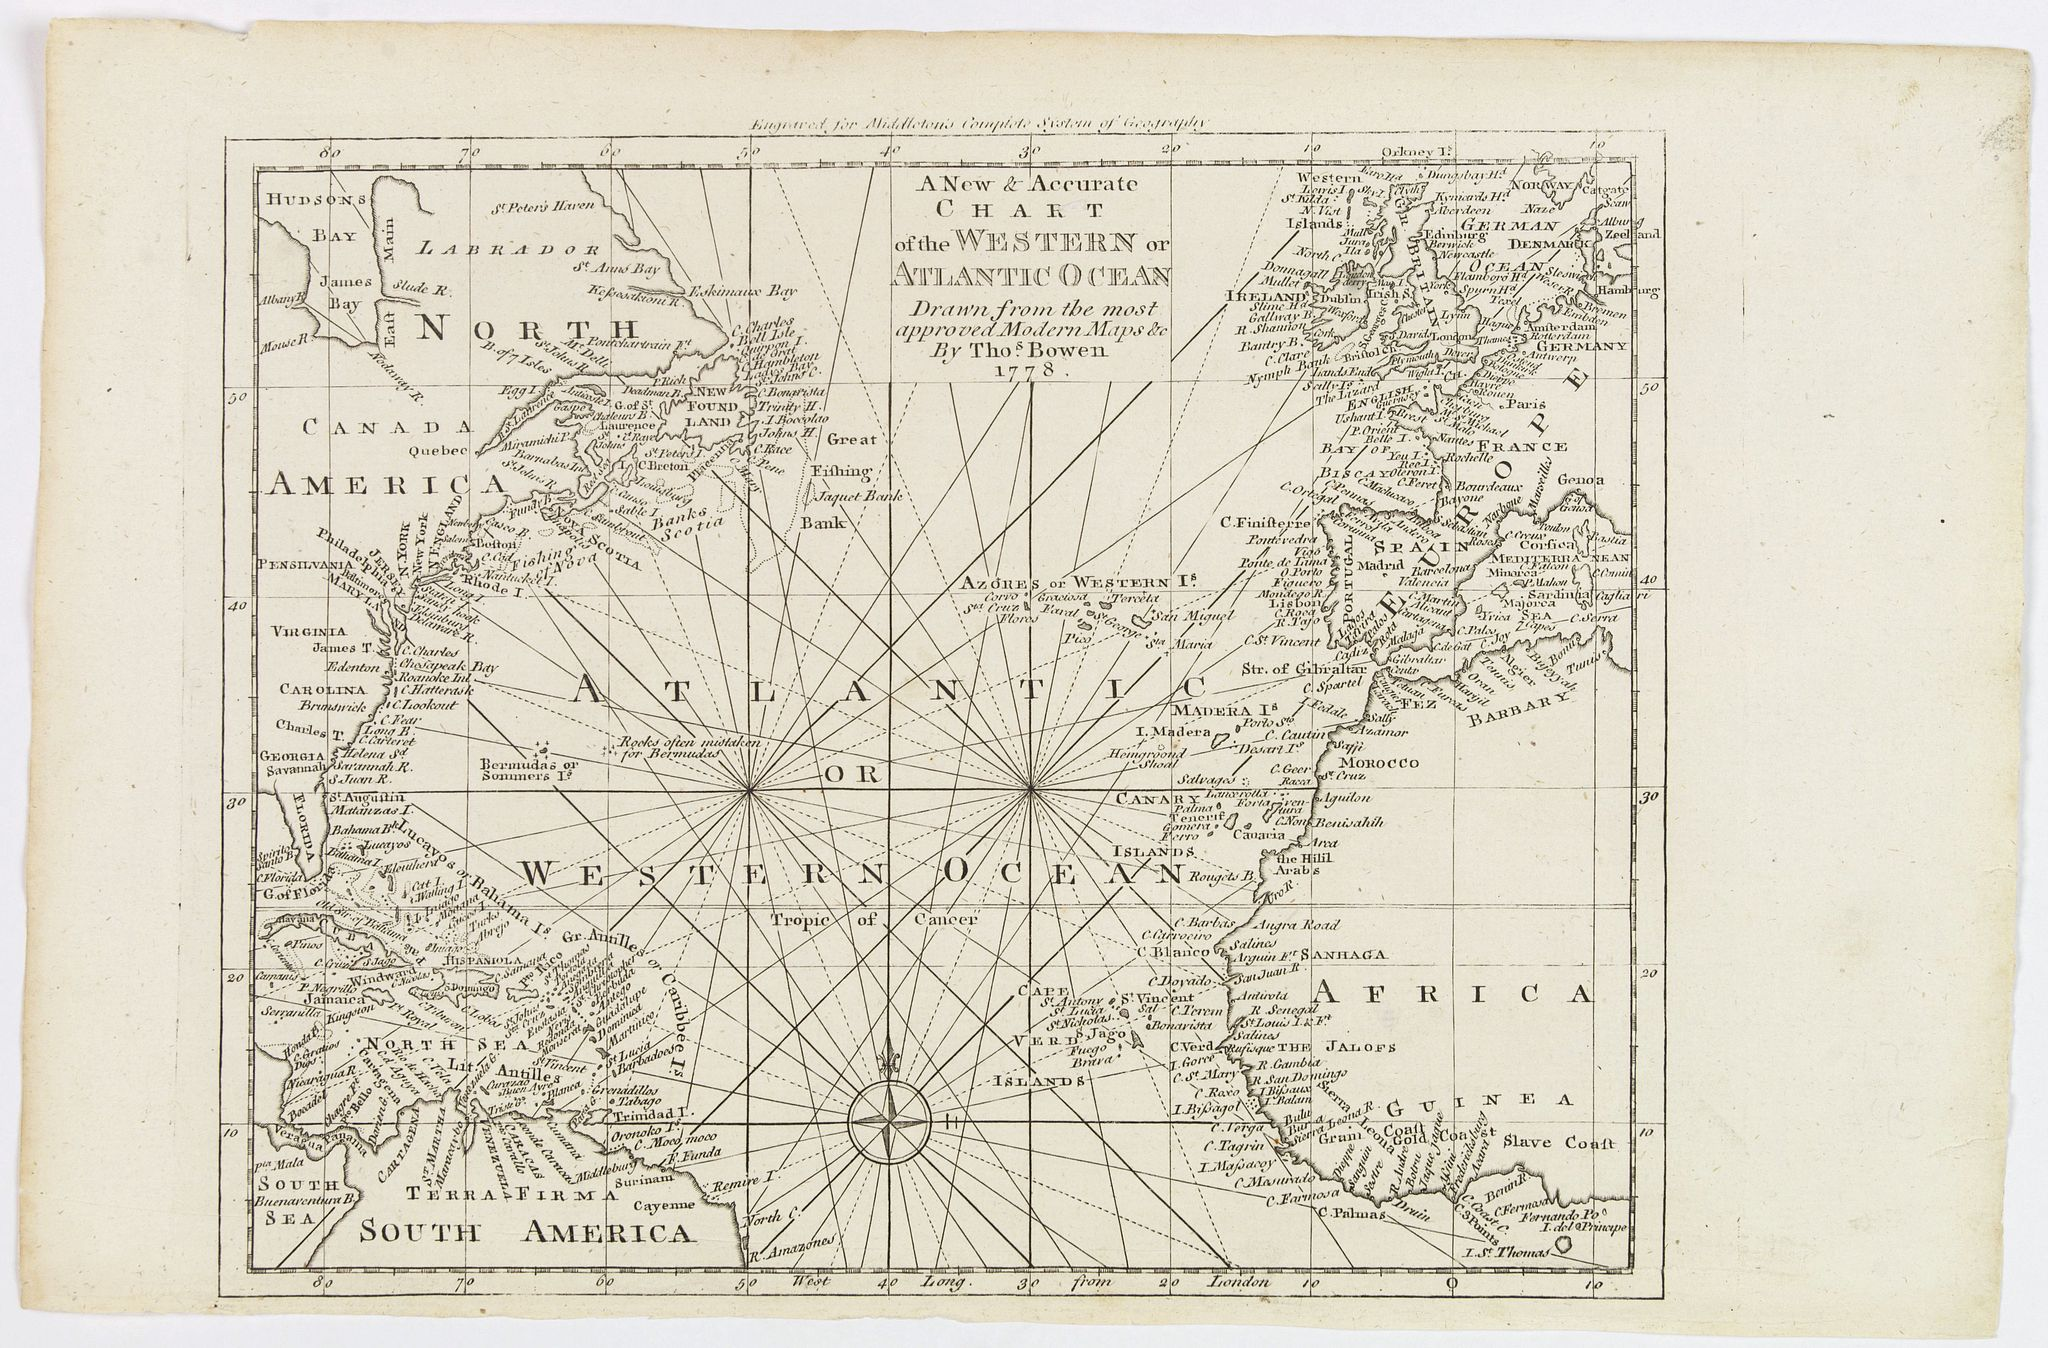 BOWEN, Thomas. - A New & Accurate Chart of the Western or Atlantic Ocean.